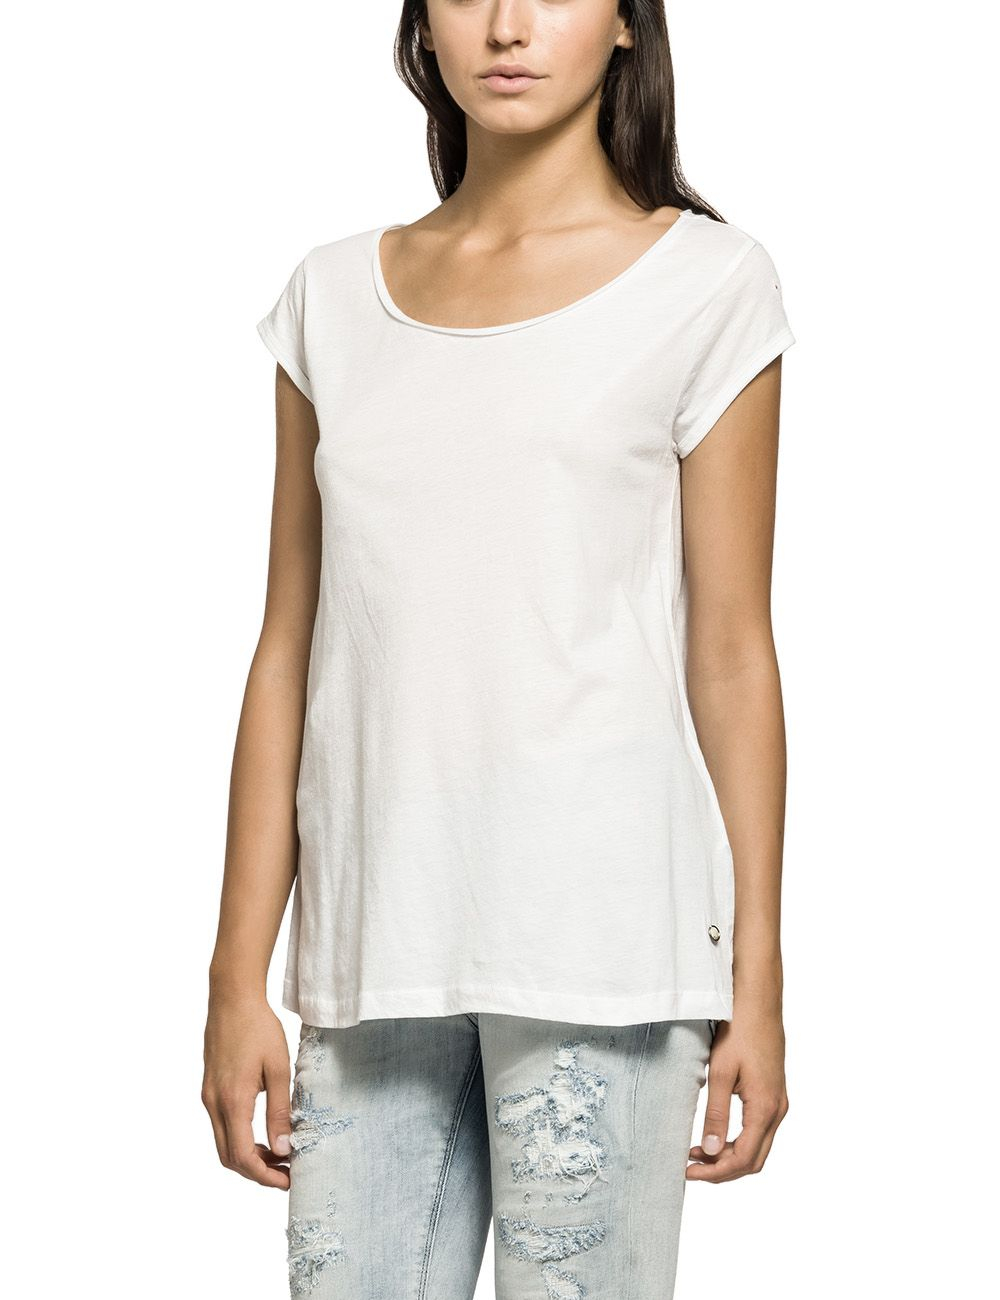 replay cotton t shirt in white lyst. Black Bedroom Furniture Sets. Home Design Ideas